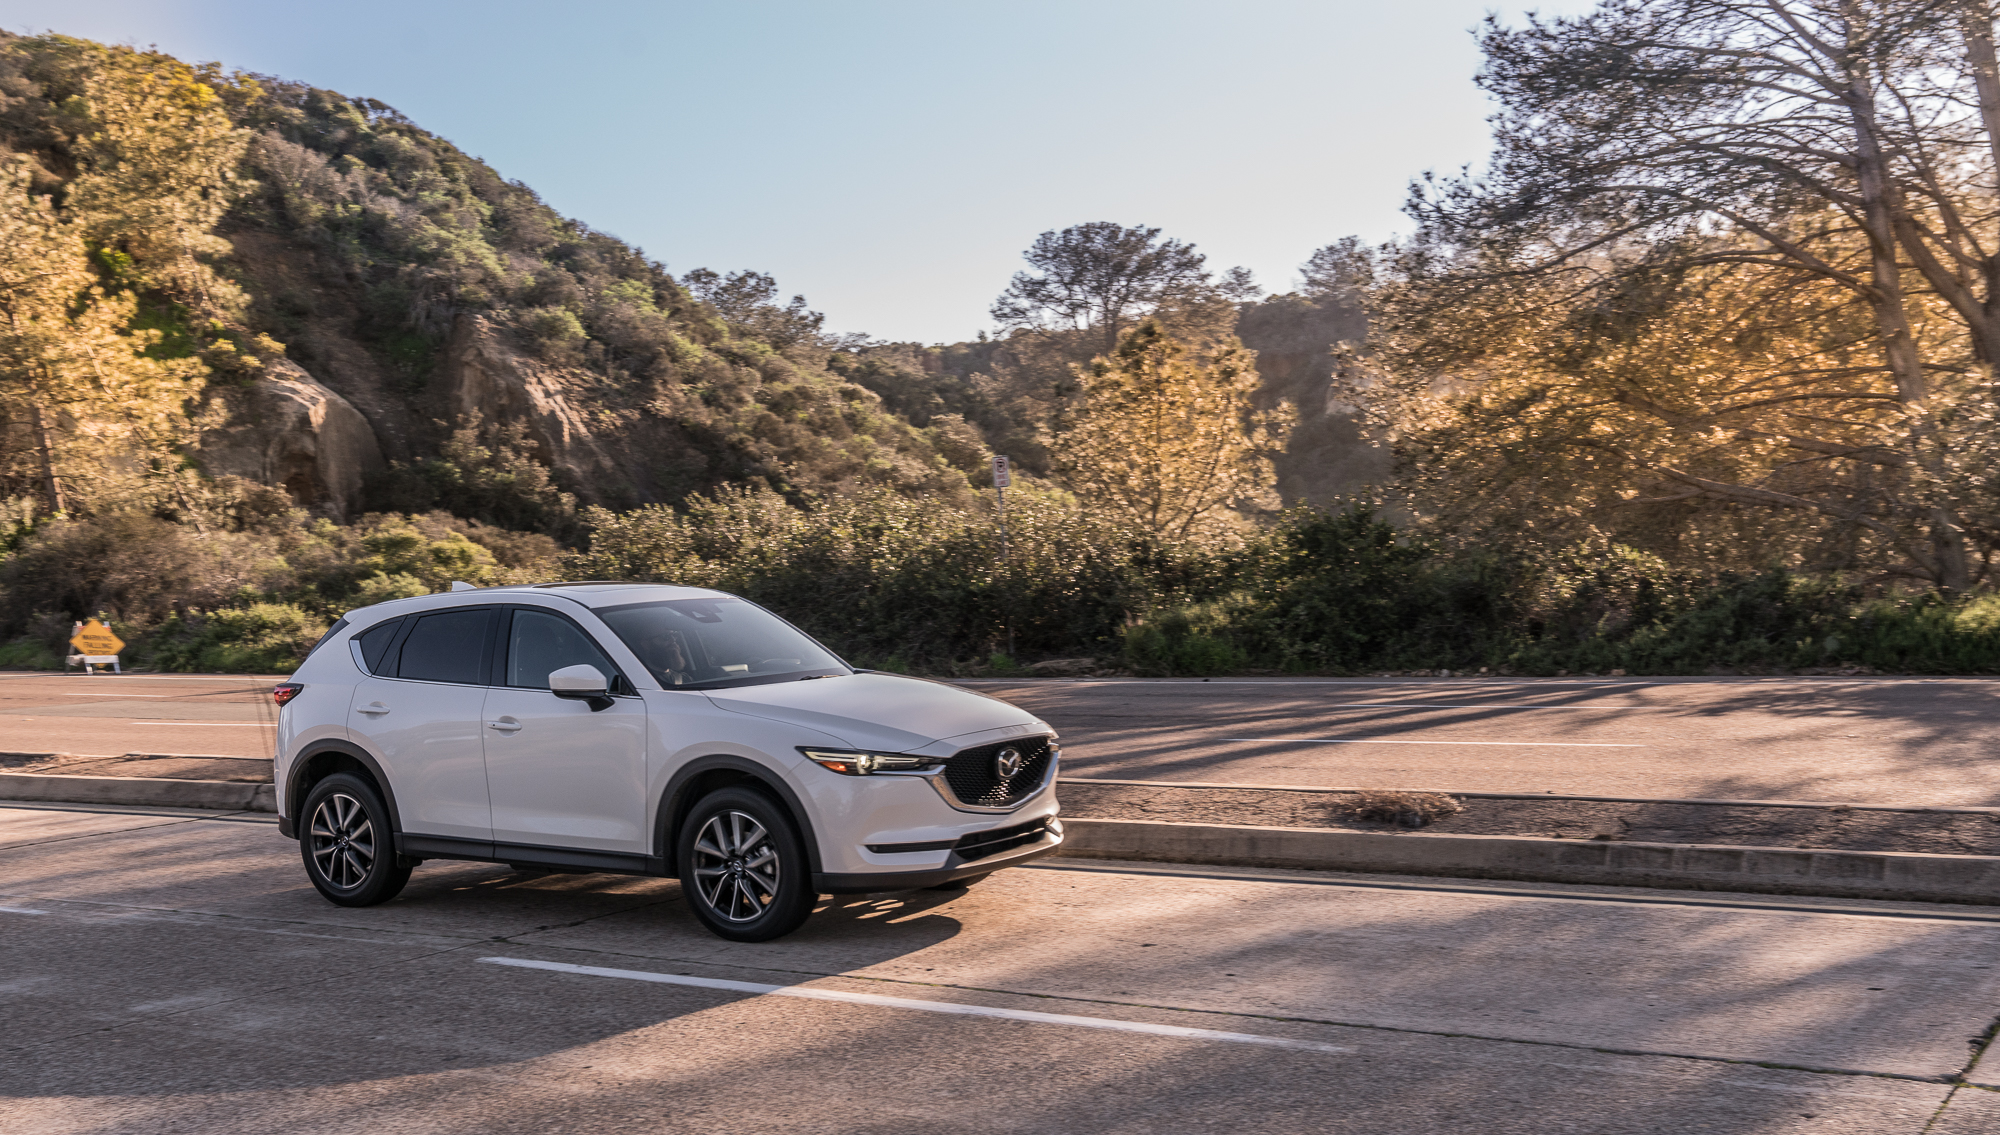 Mazdas Move Upmarket With The 2017 Cx 5 Ars Technica 2015 Mazda Wiring Diagram Enlarge